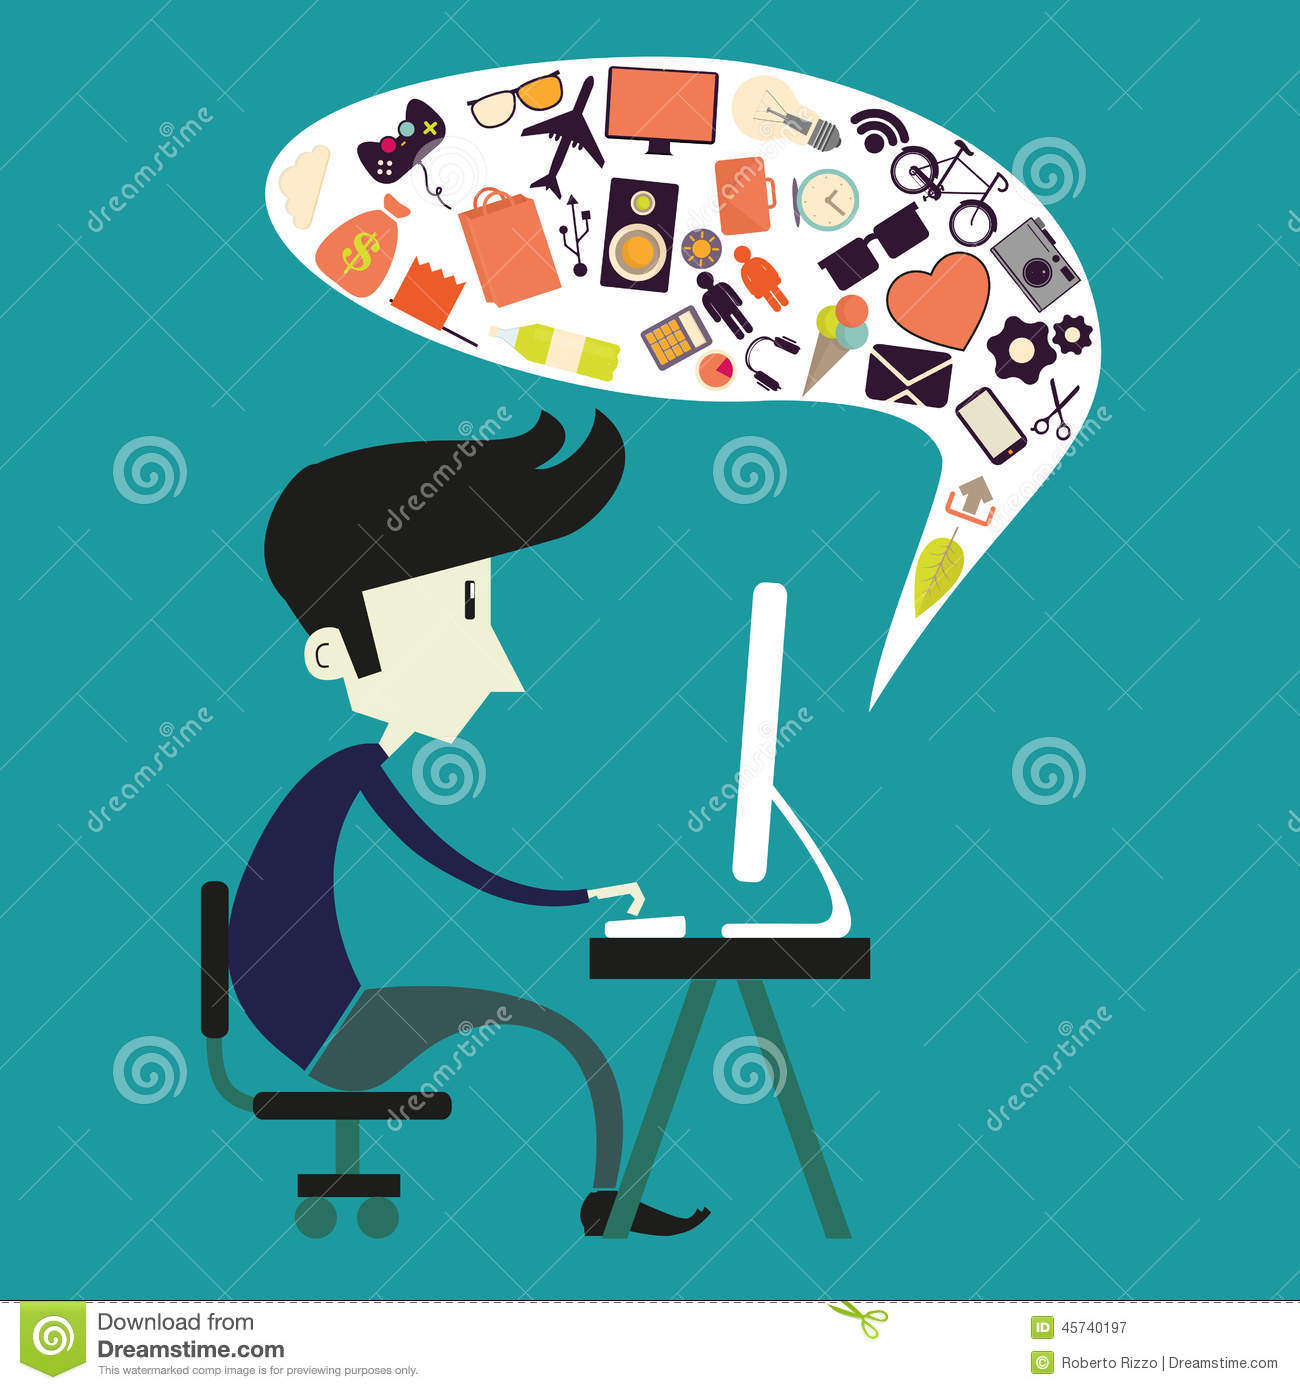 Boy and computer stock vector. Illustration of adorable